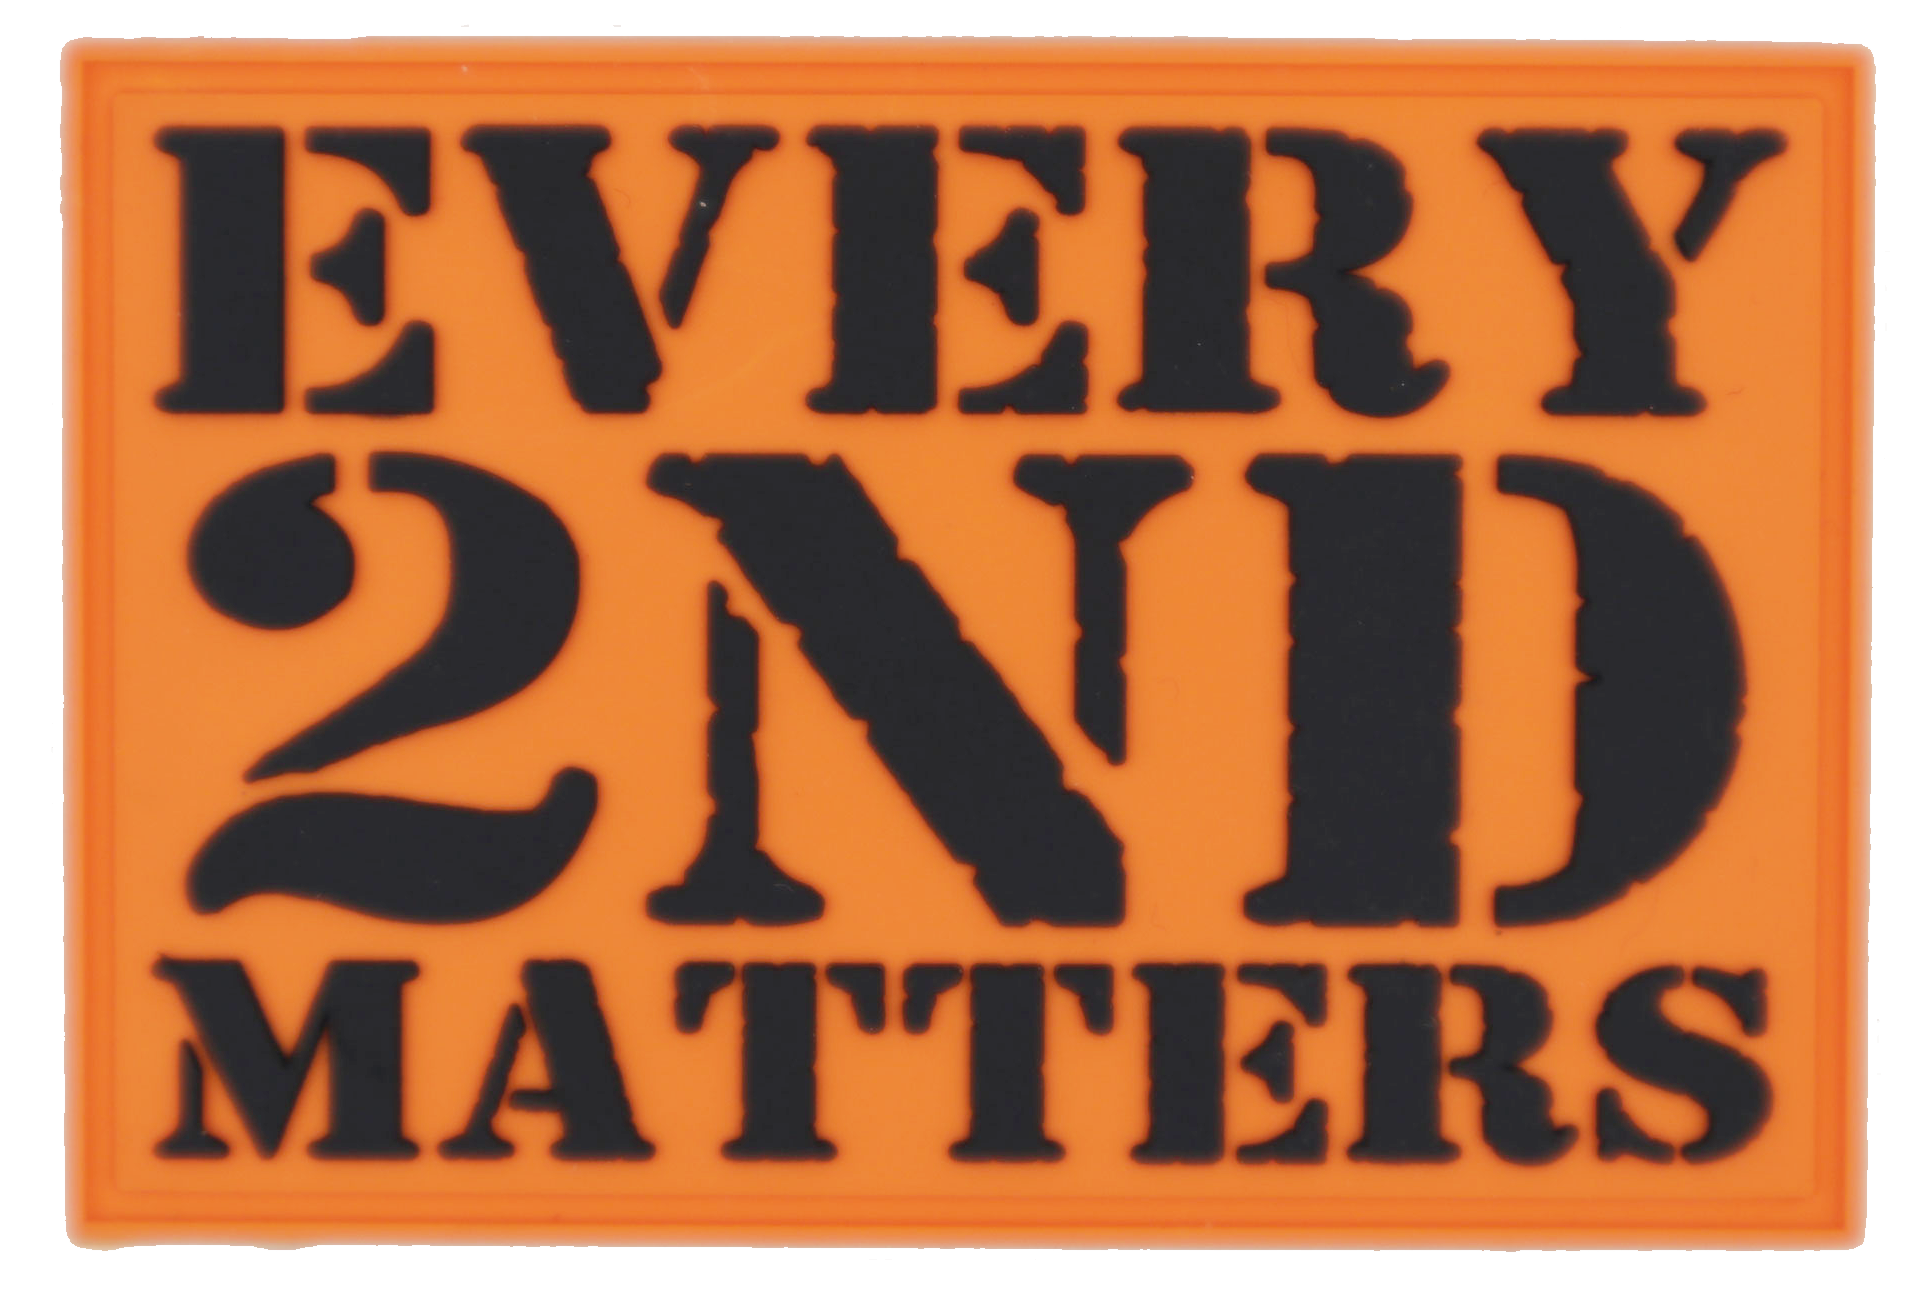 Every 2nd Matters orange